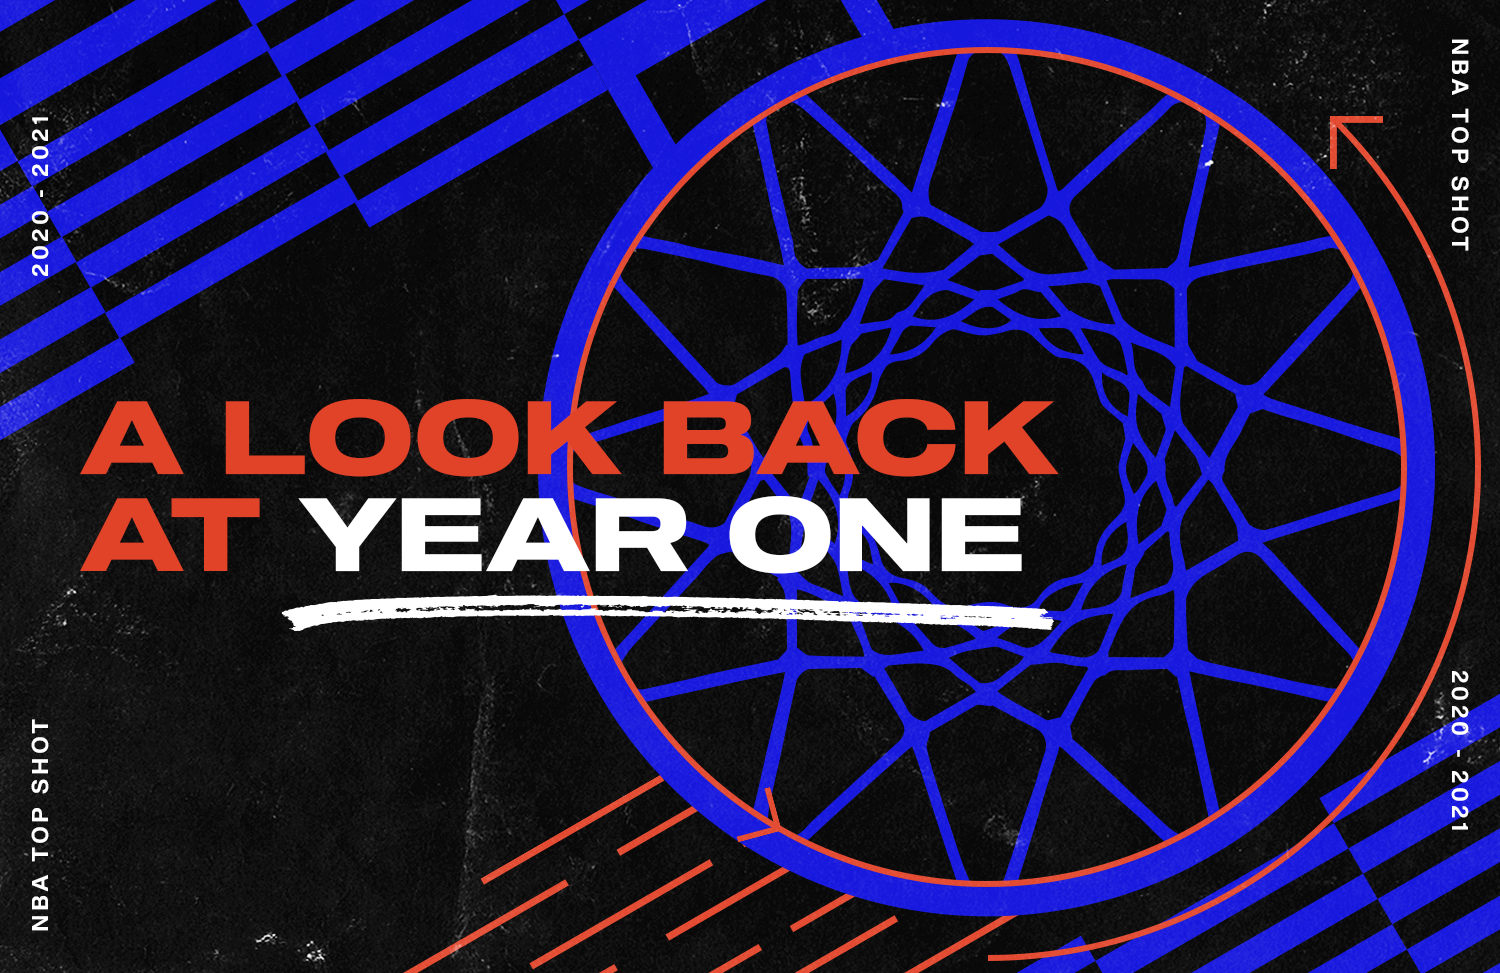 We are celebrating one year of Top Shot with a big day of surprises and festivities. Let's start with a look back at the last year.